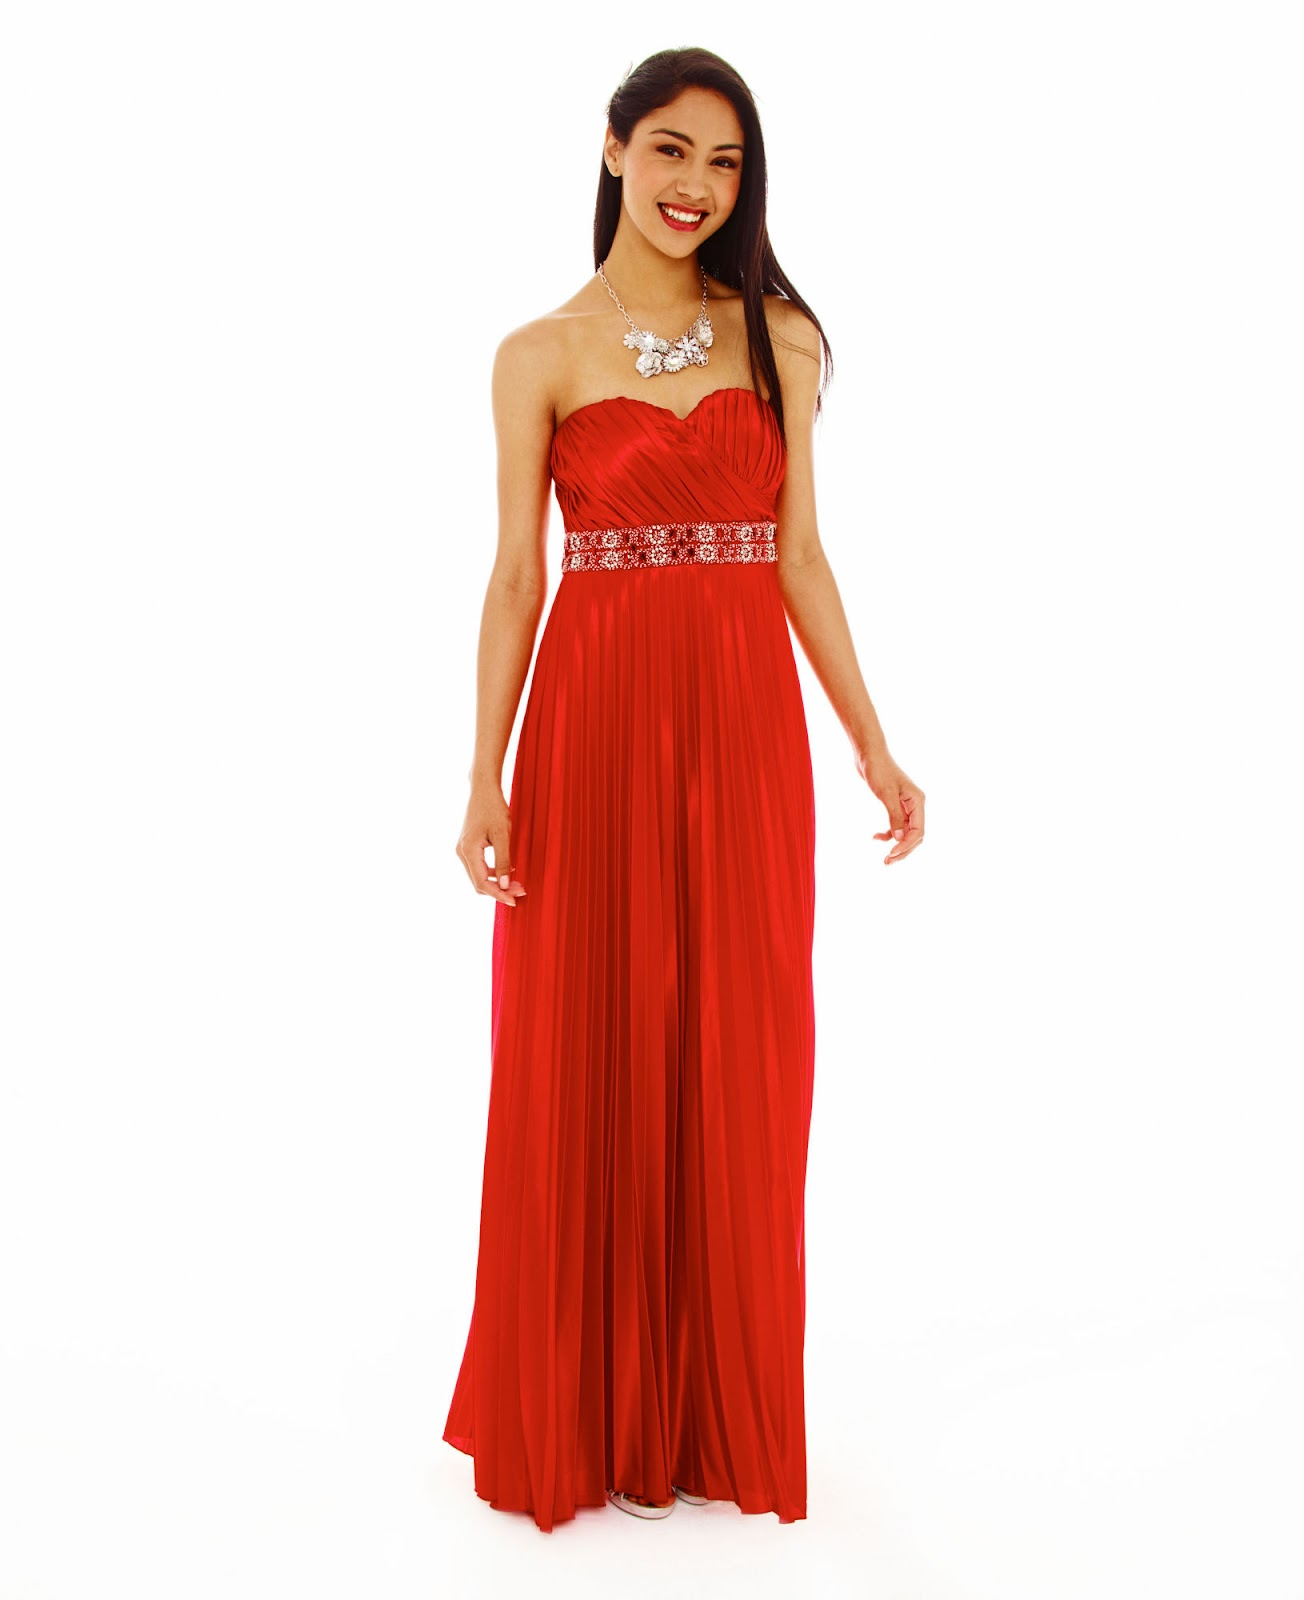 Prom Dresses: Catalog Cuties: JCPenney At The Prom, Part 12